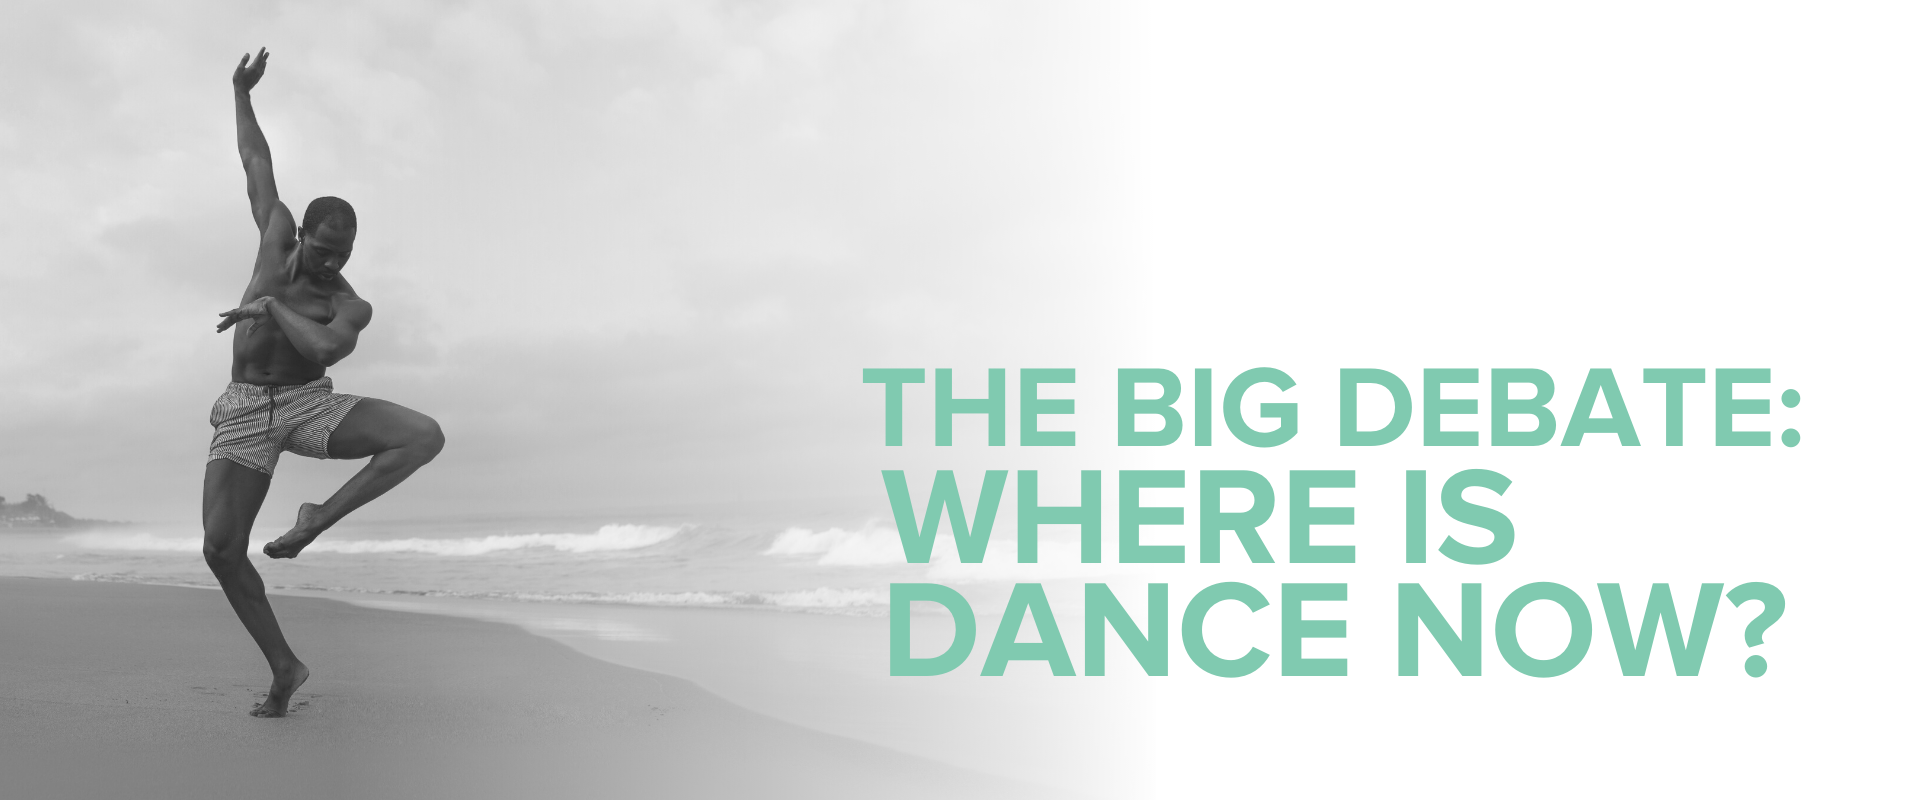 The Big Debate: Where is Dance Now? — Page Banner